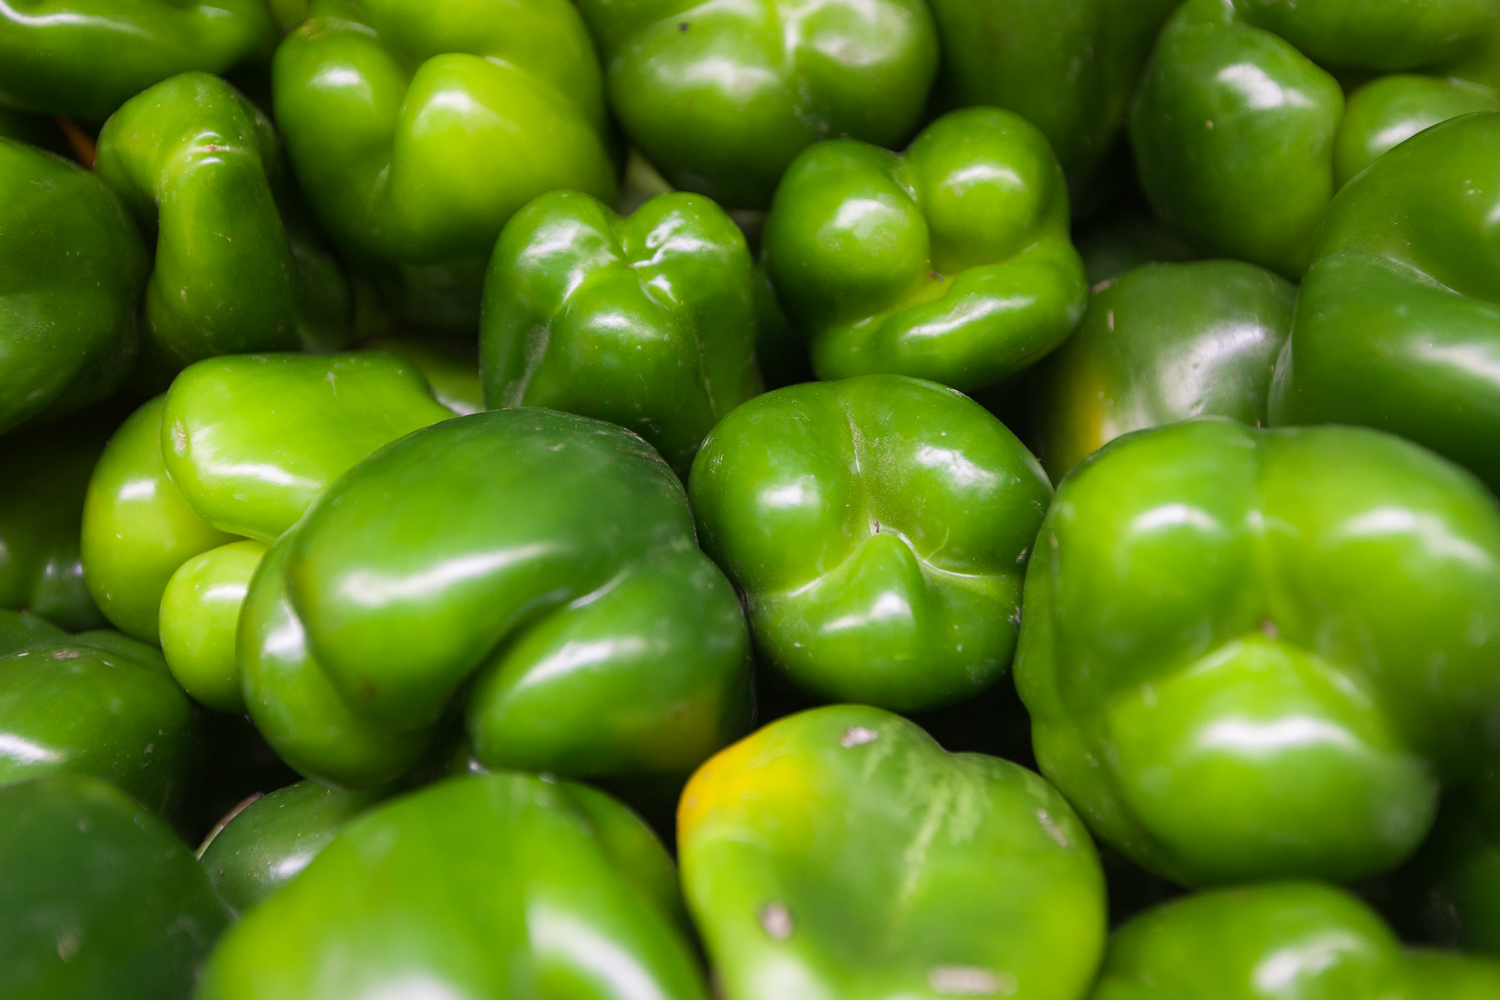 Organic Green Bell Peppers Mana Foods Produce Department